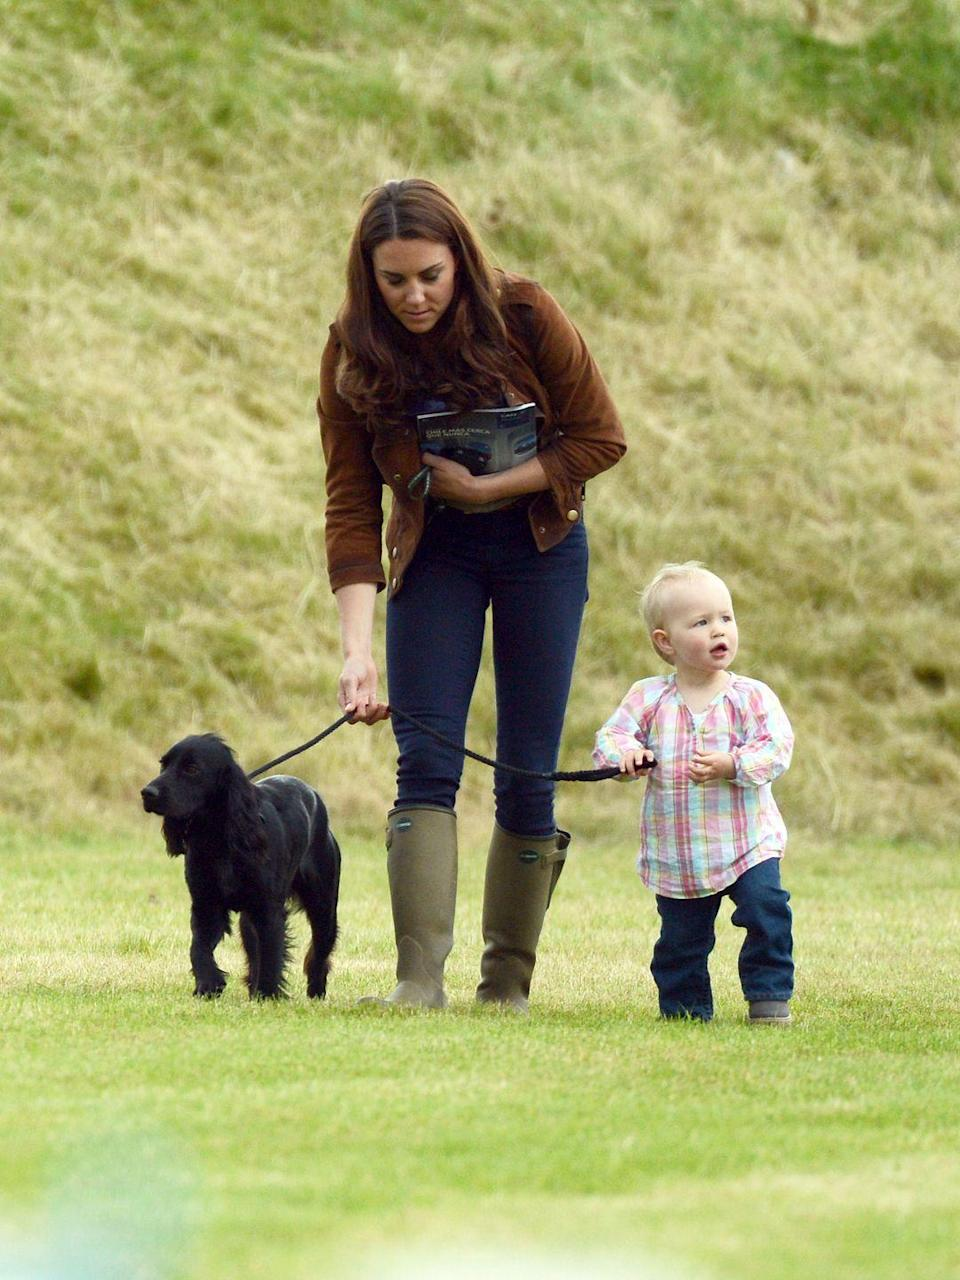 <p>The Duchess of Cambridge walks her dog, Lupo, with a 2-year-old Savannah Phillips. When Savannah was born in 2010, she was the first great-grandchild for Queen Elizabeth. </p>